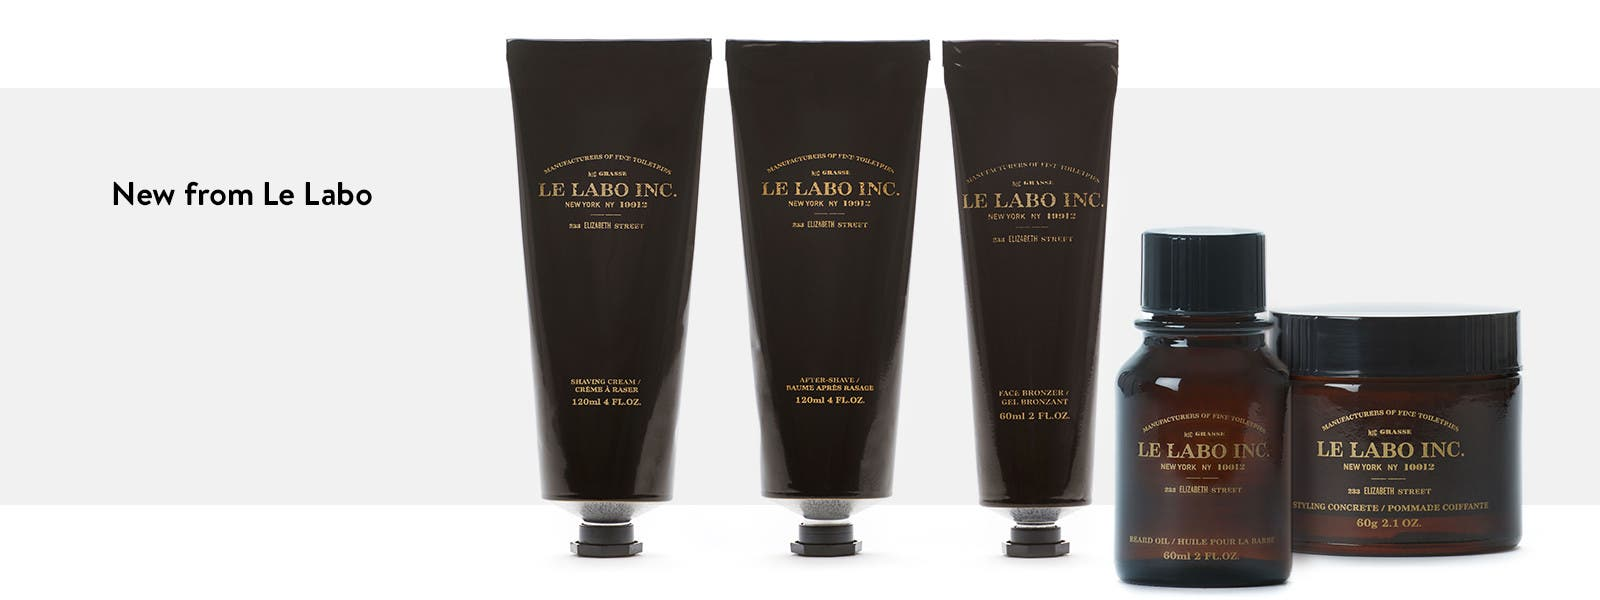 A new range of grooming products from Le Labo.